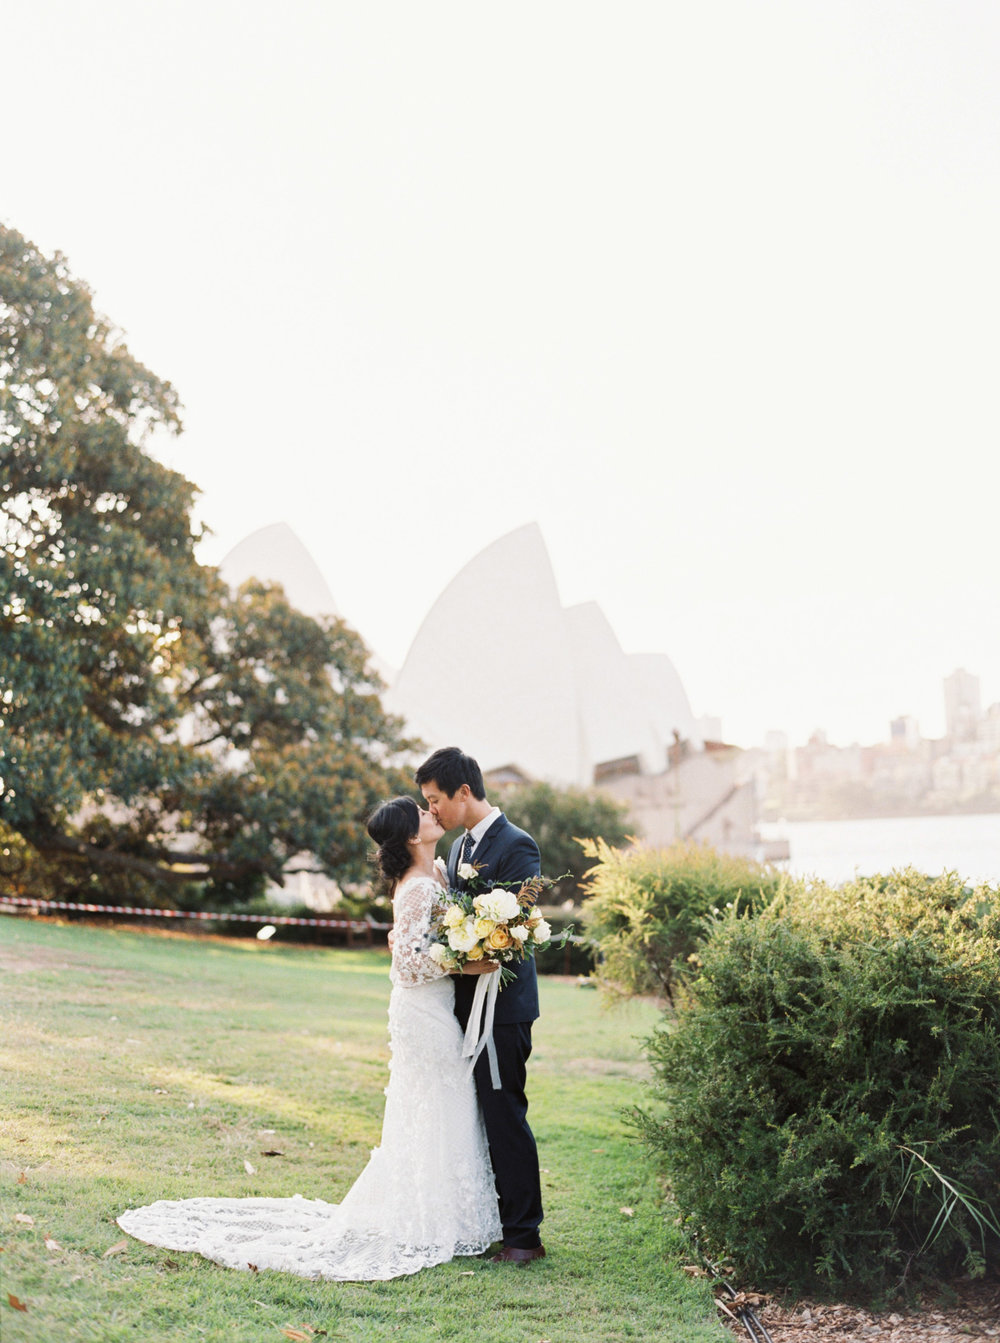 00013- Fine Art Film Australia Destination Sydney Wedding Photographer Sheri McMahon.jpg